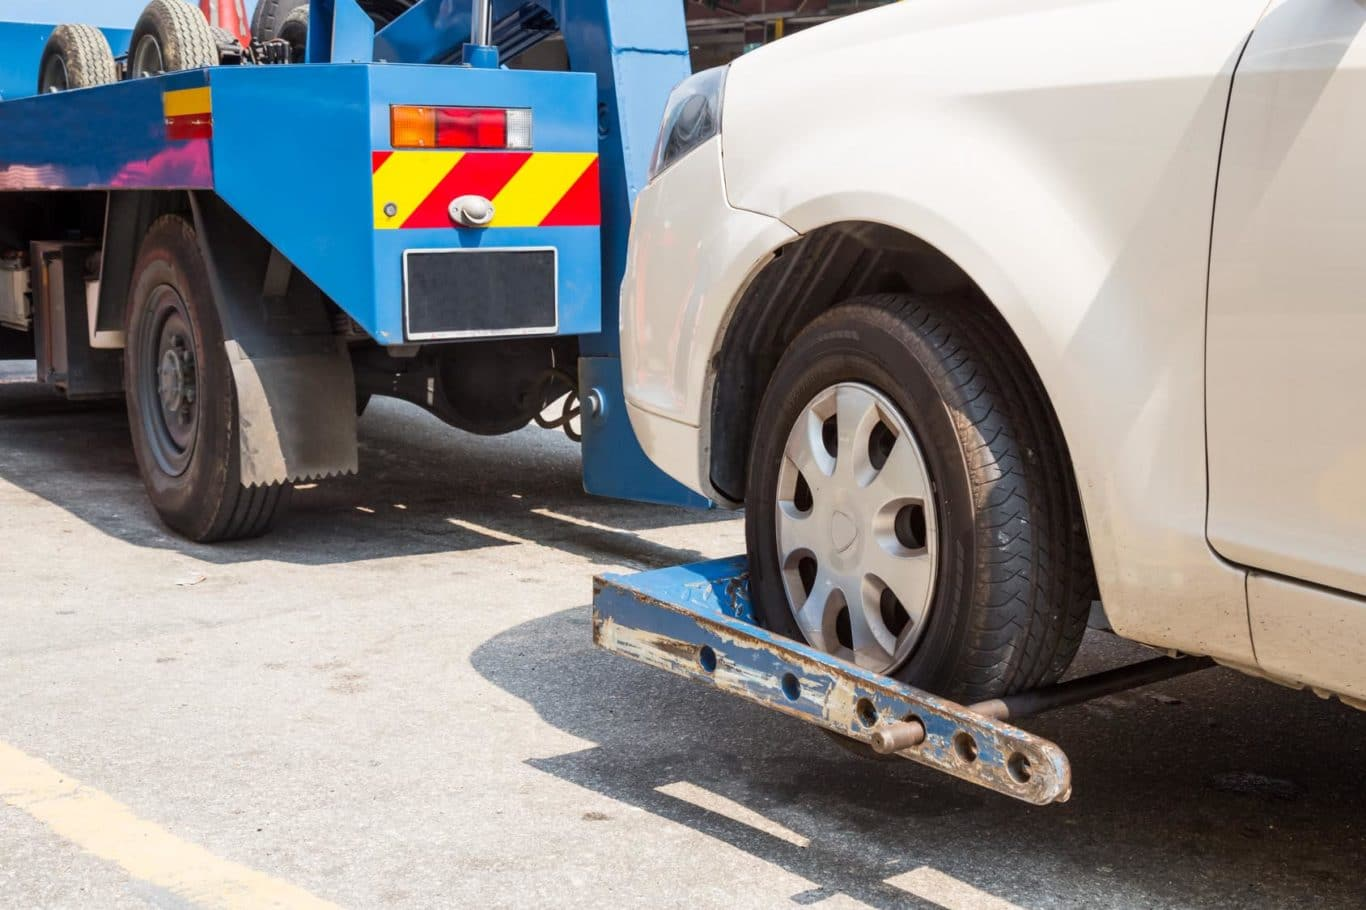 Saggart expert Towing And Recovery Dublin services